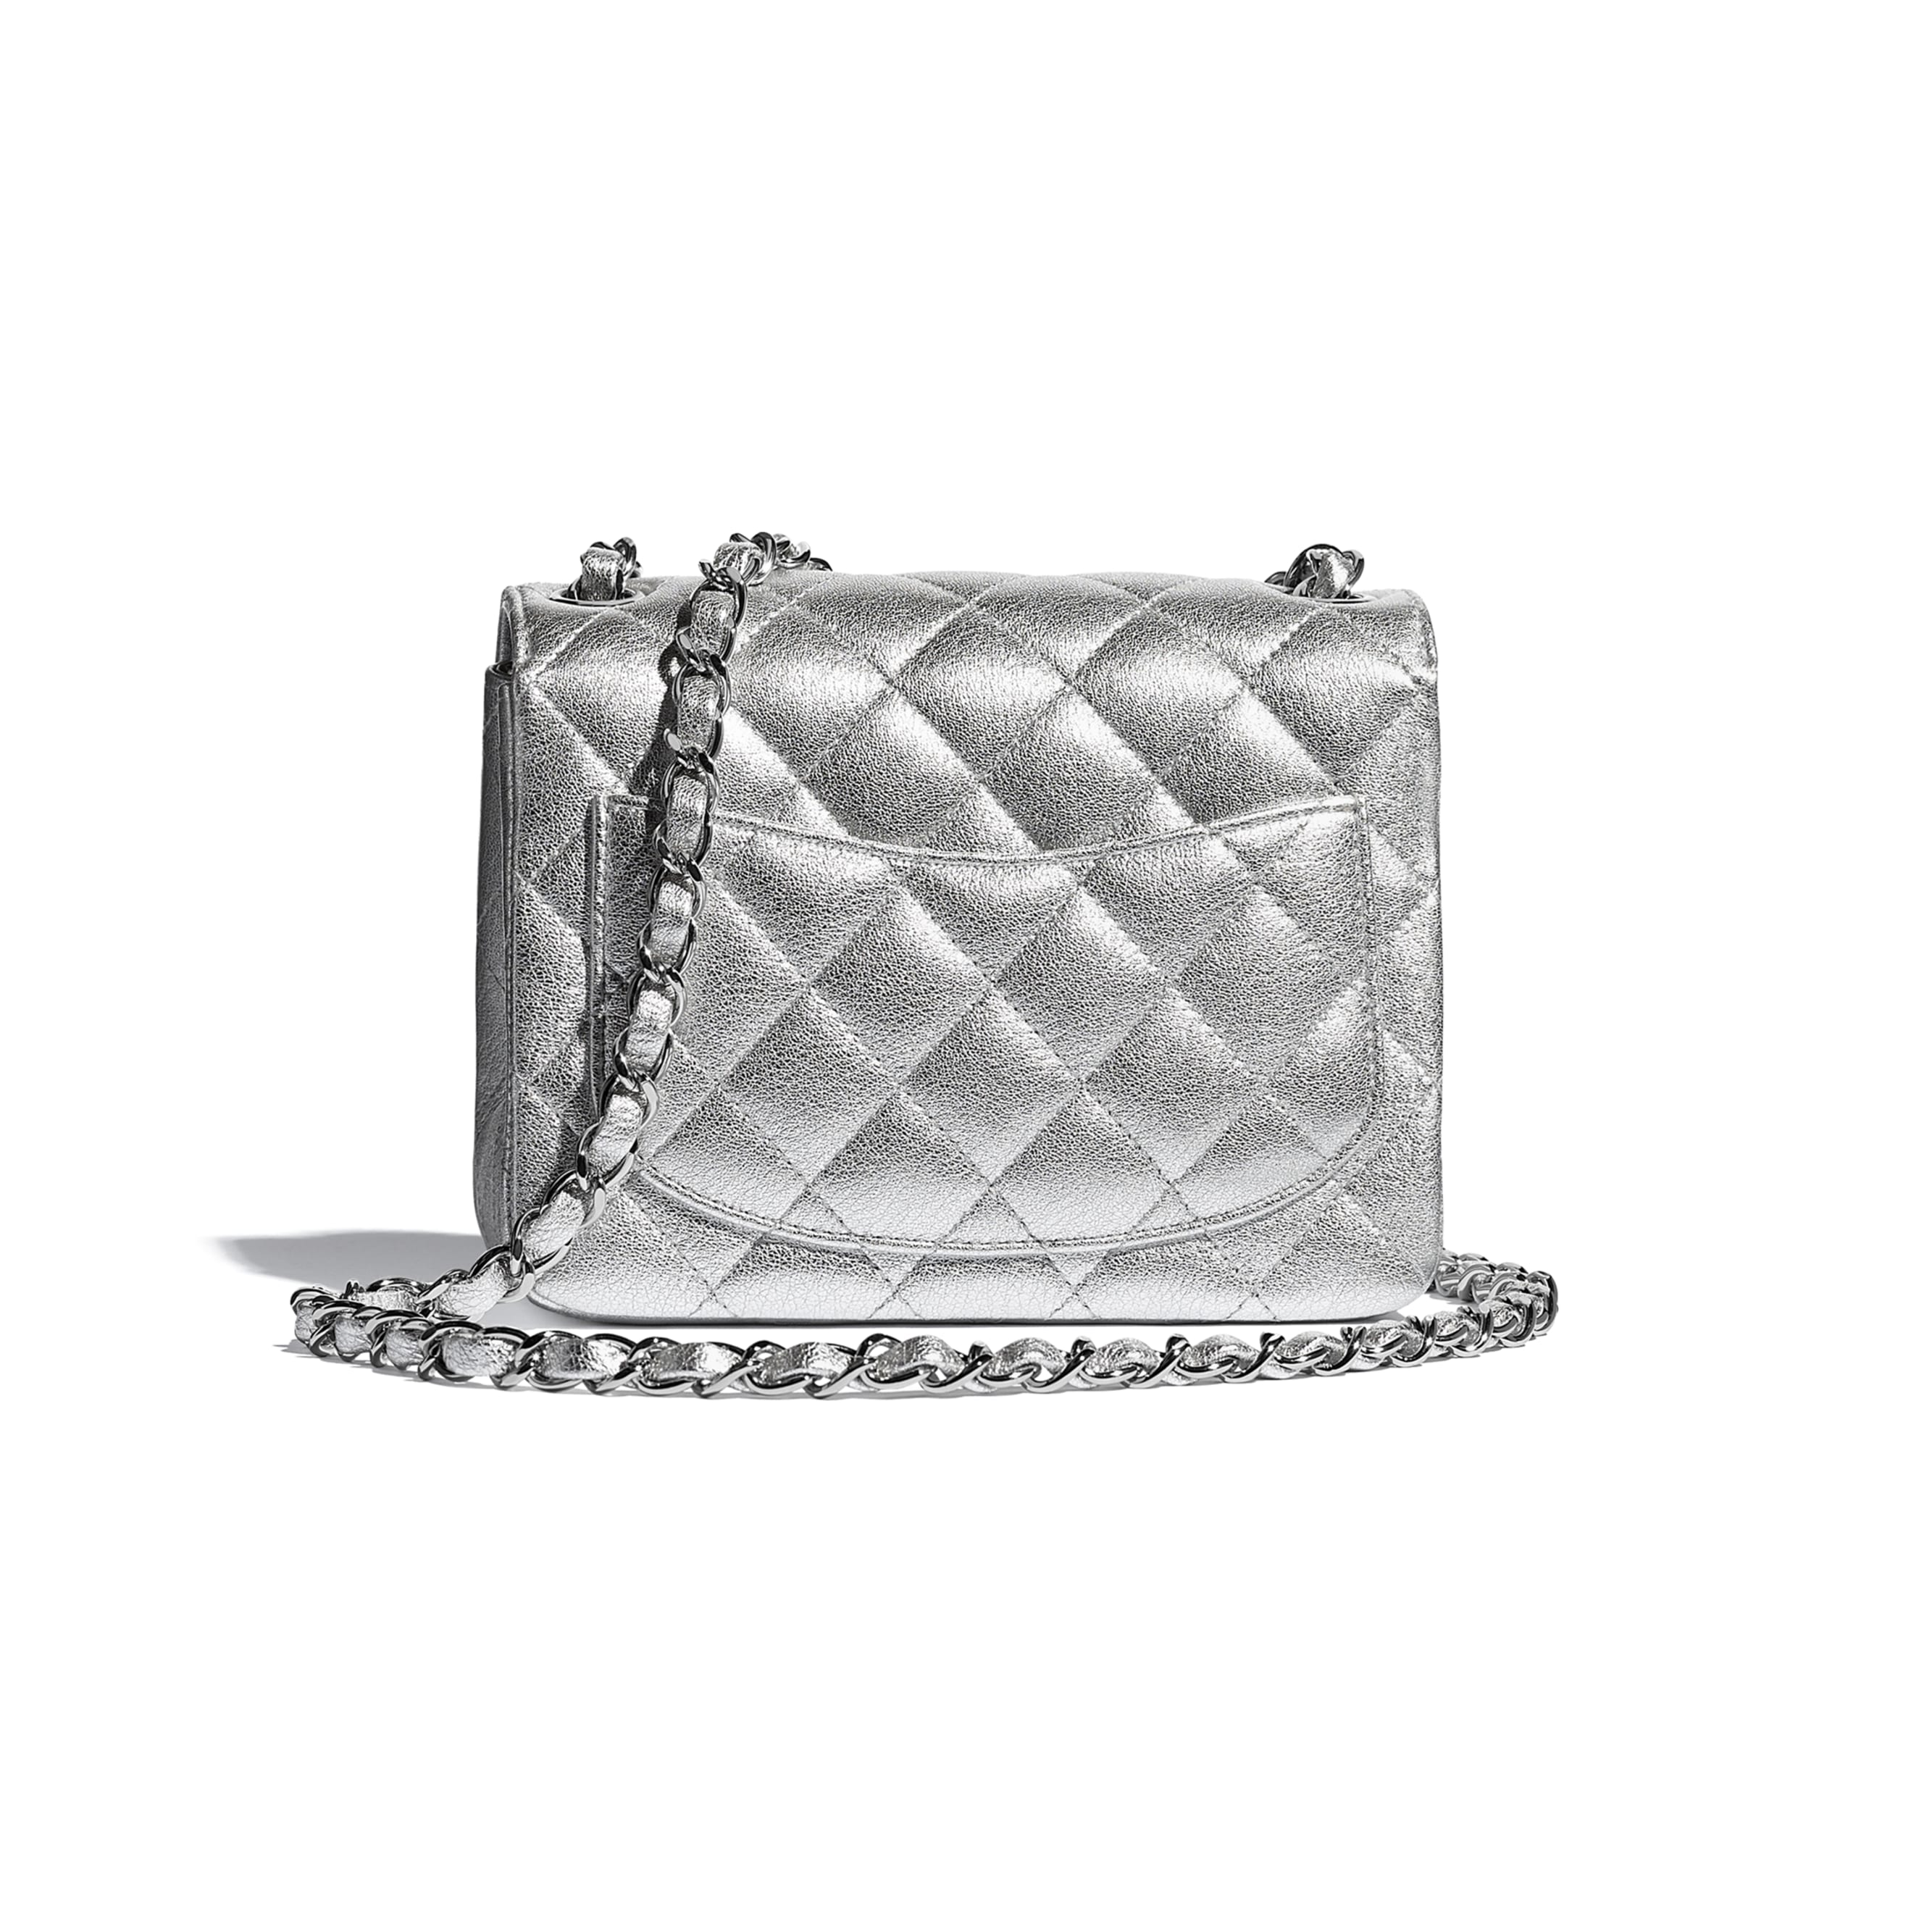 Mini Flap Bag - Silver - Metallic Lambskin & Silver Metal - CHANEL - Alternative view - see standard sized version